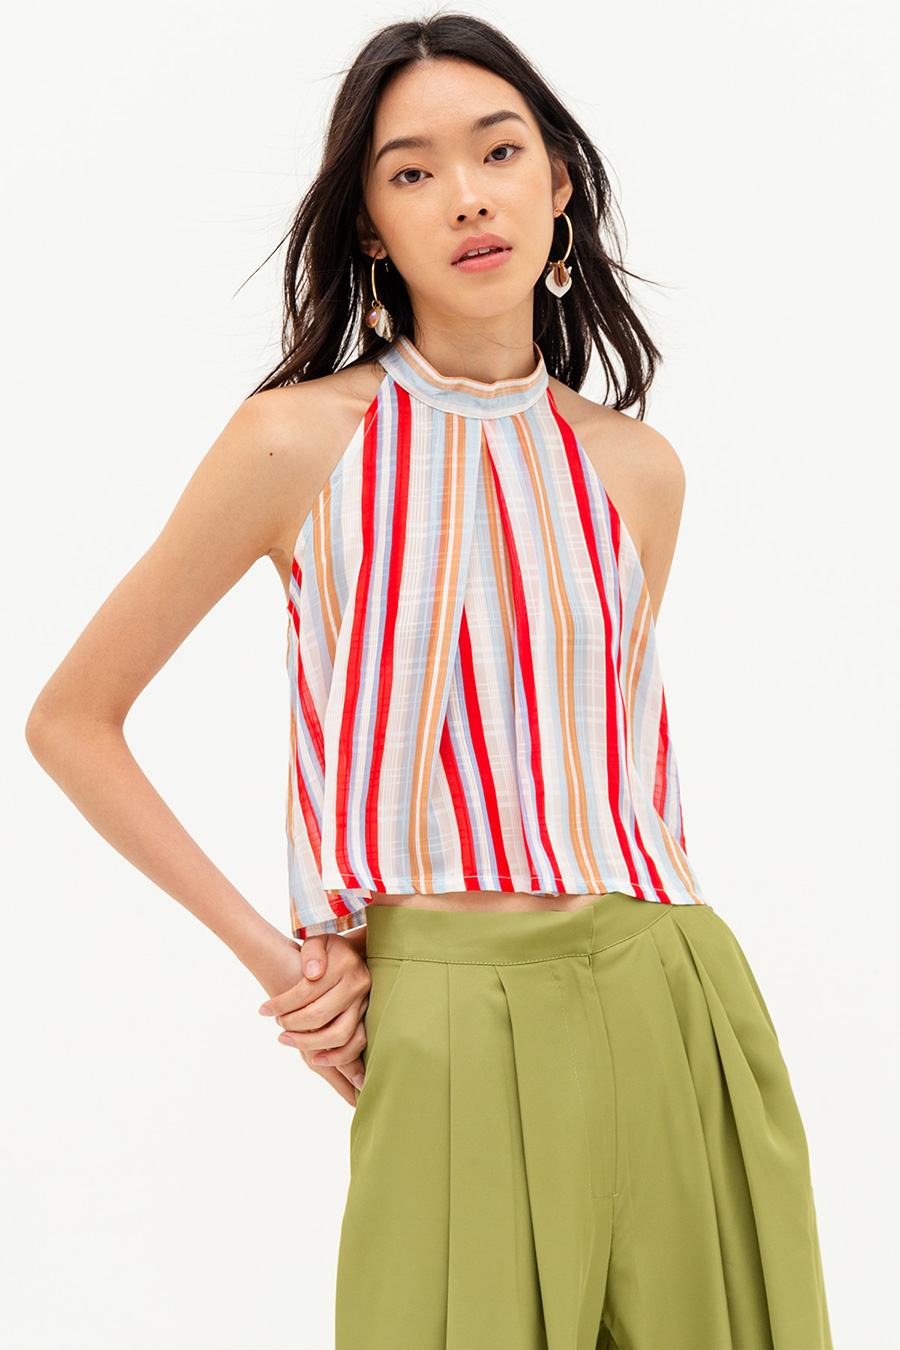 OCTAVIE TOP - NAPOLI STRIPE [BY MODPARADE]